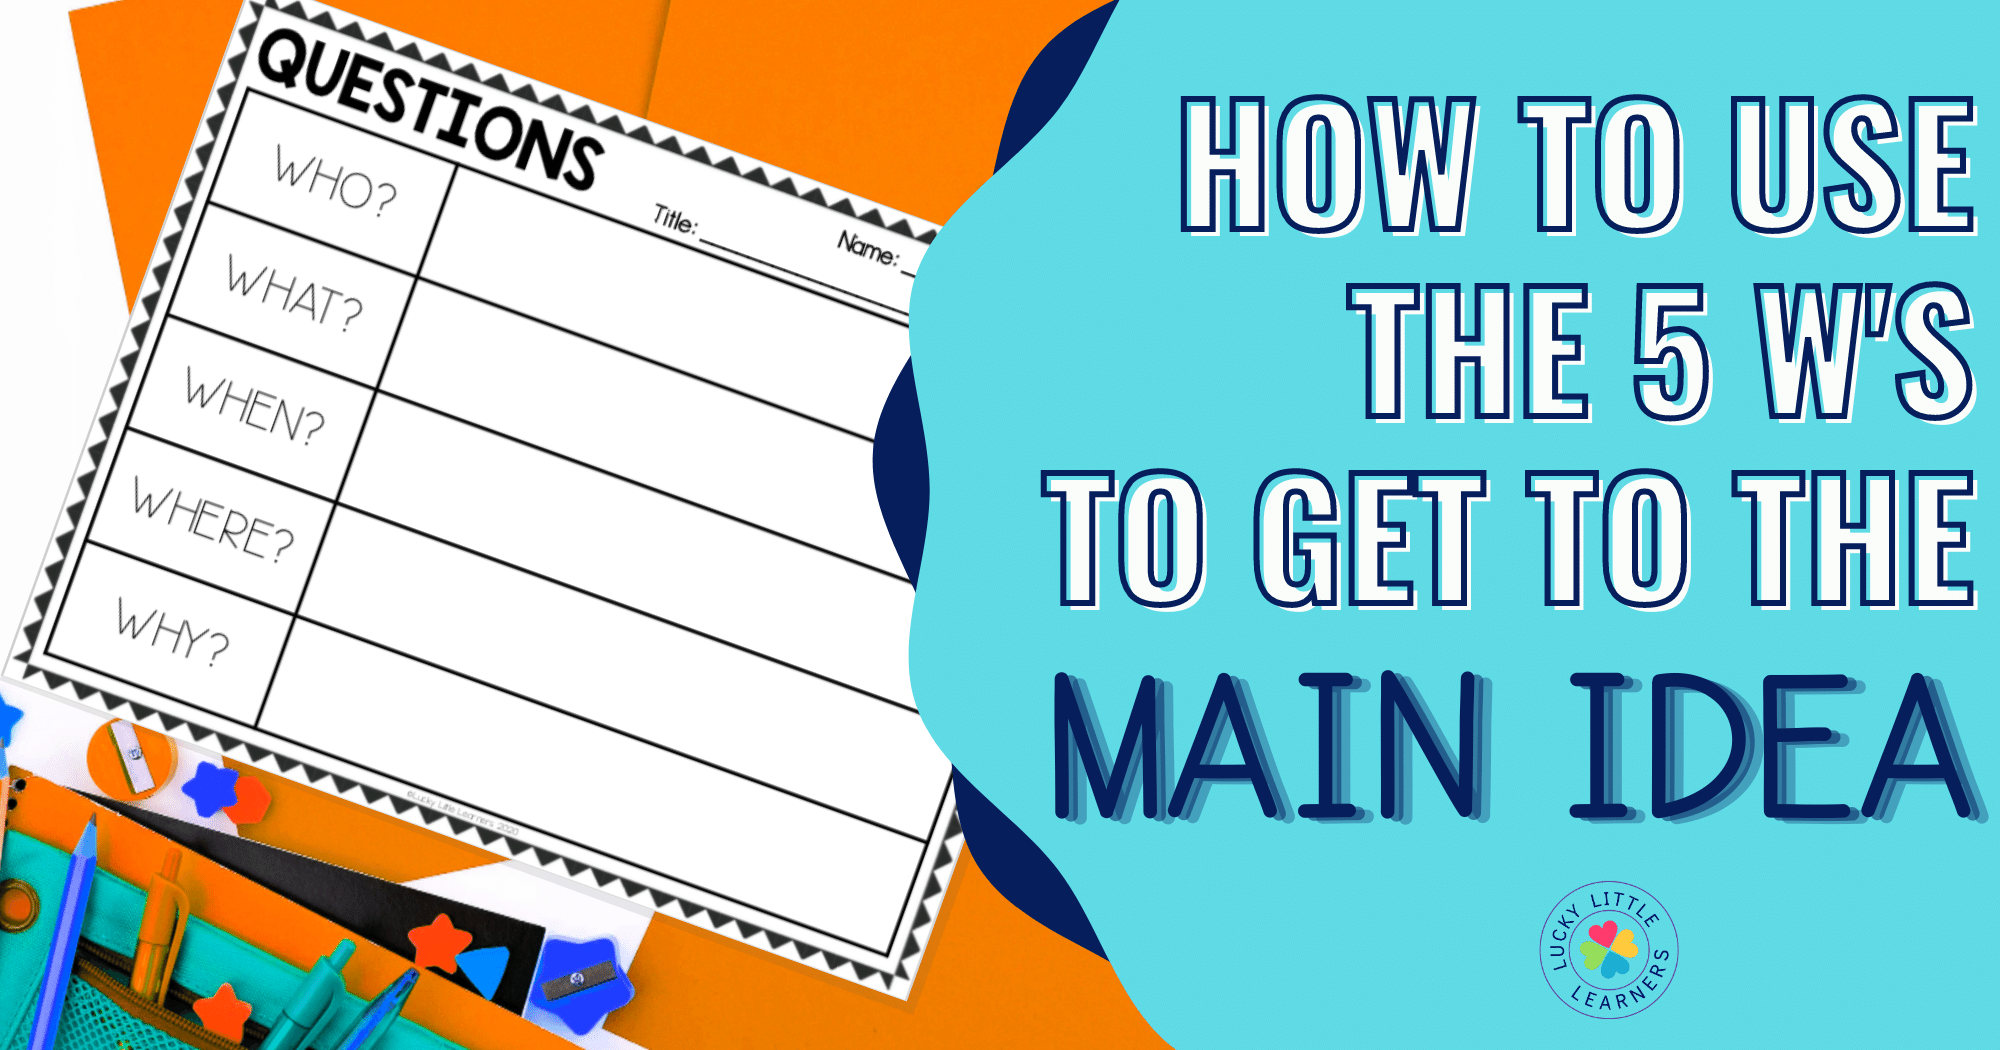 How to Use the 5 Ws to Get to the Main Idea